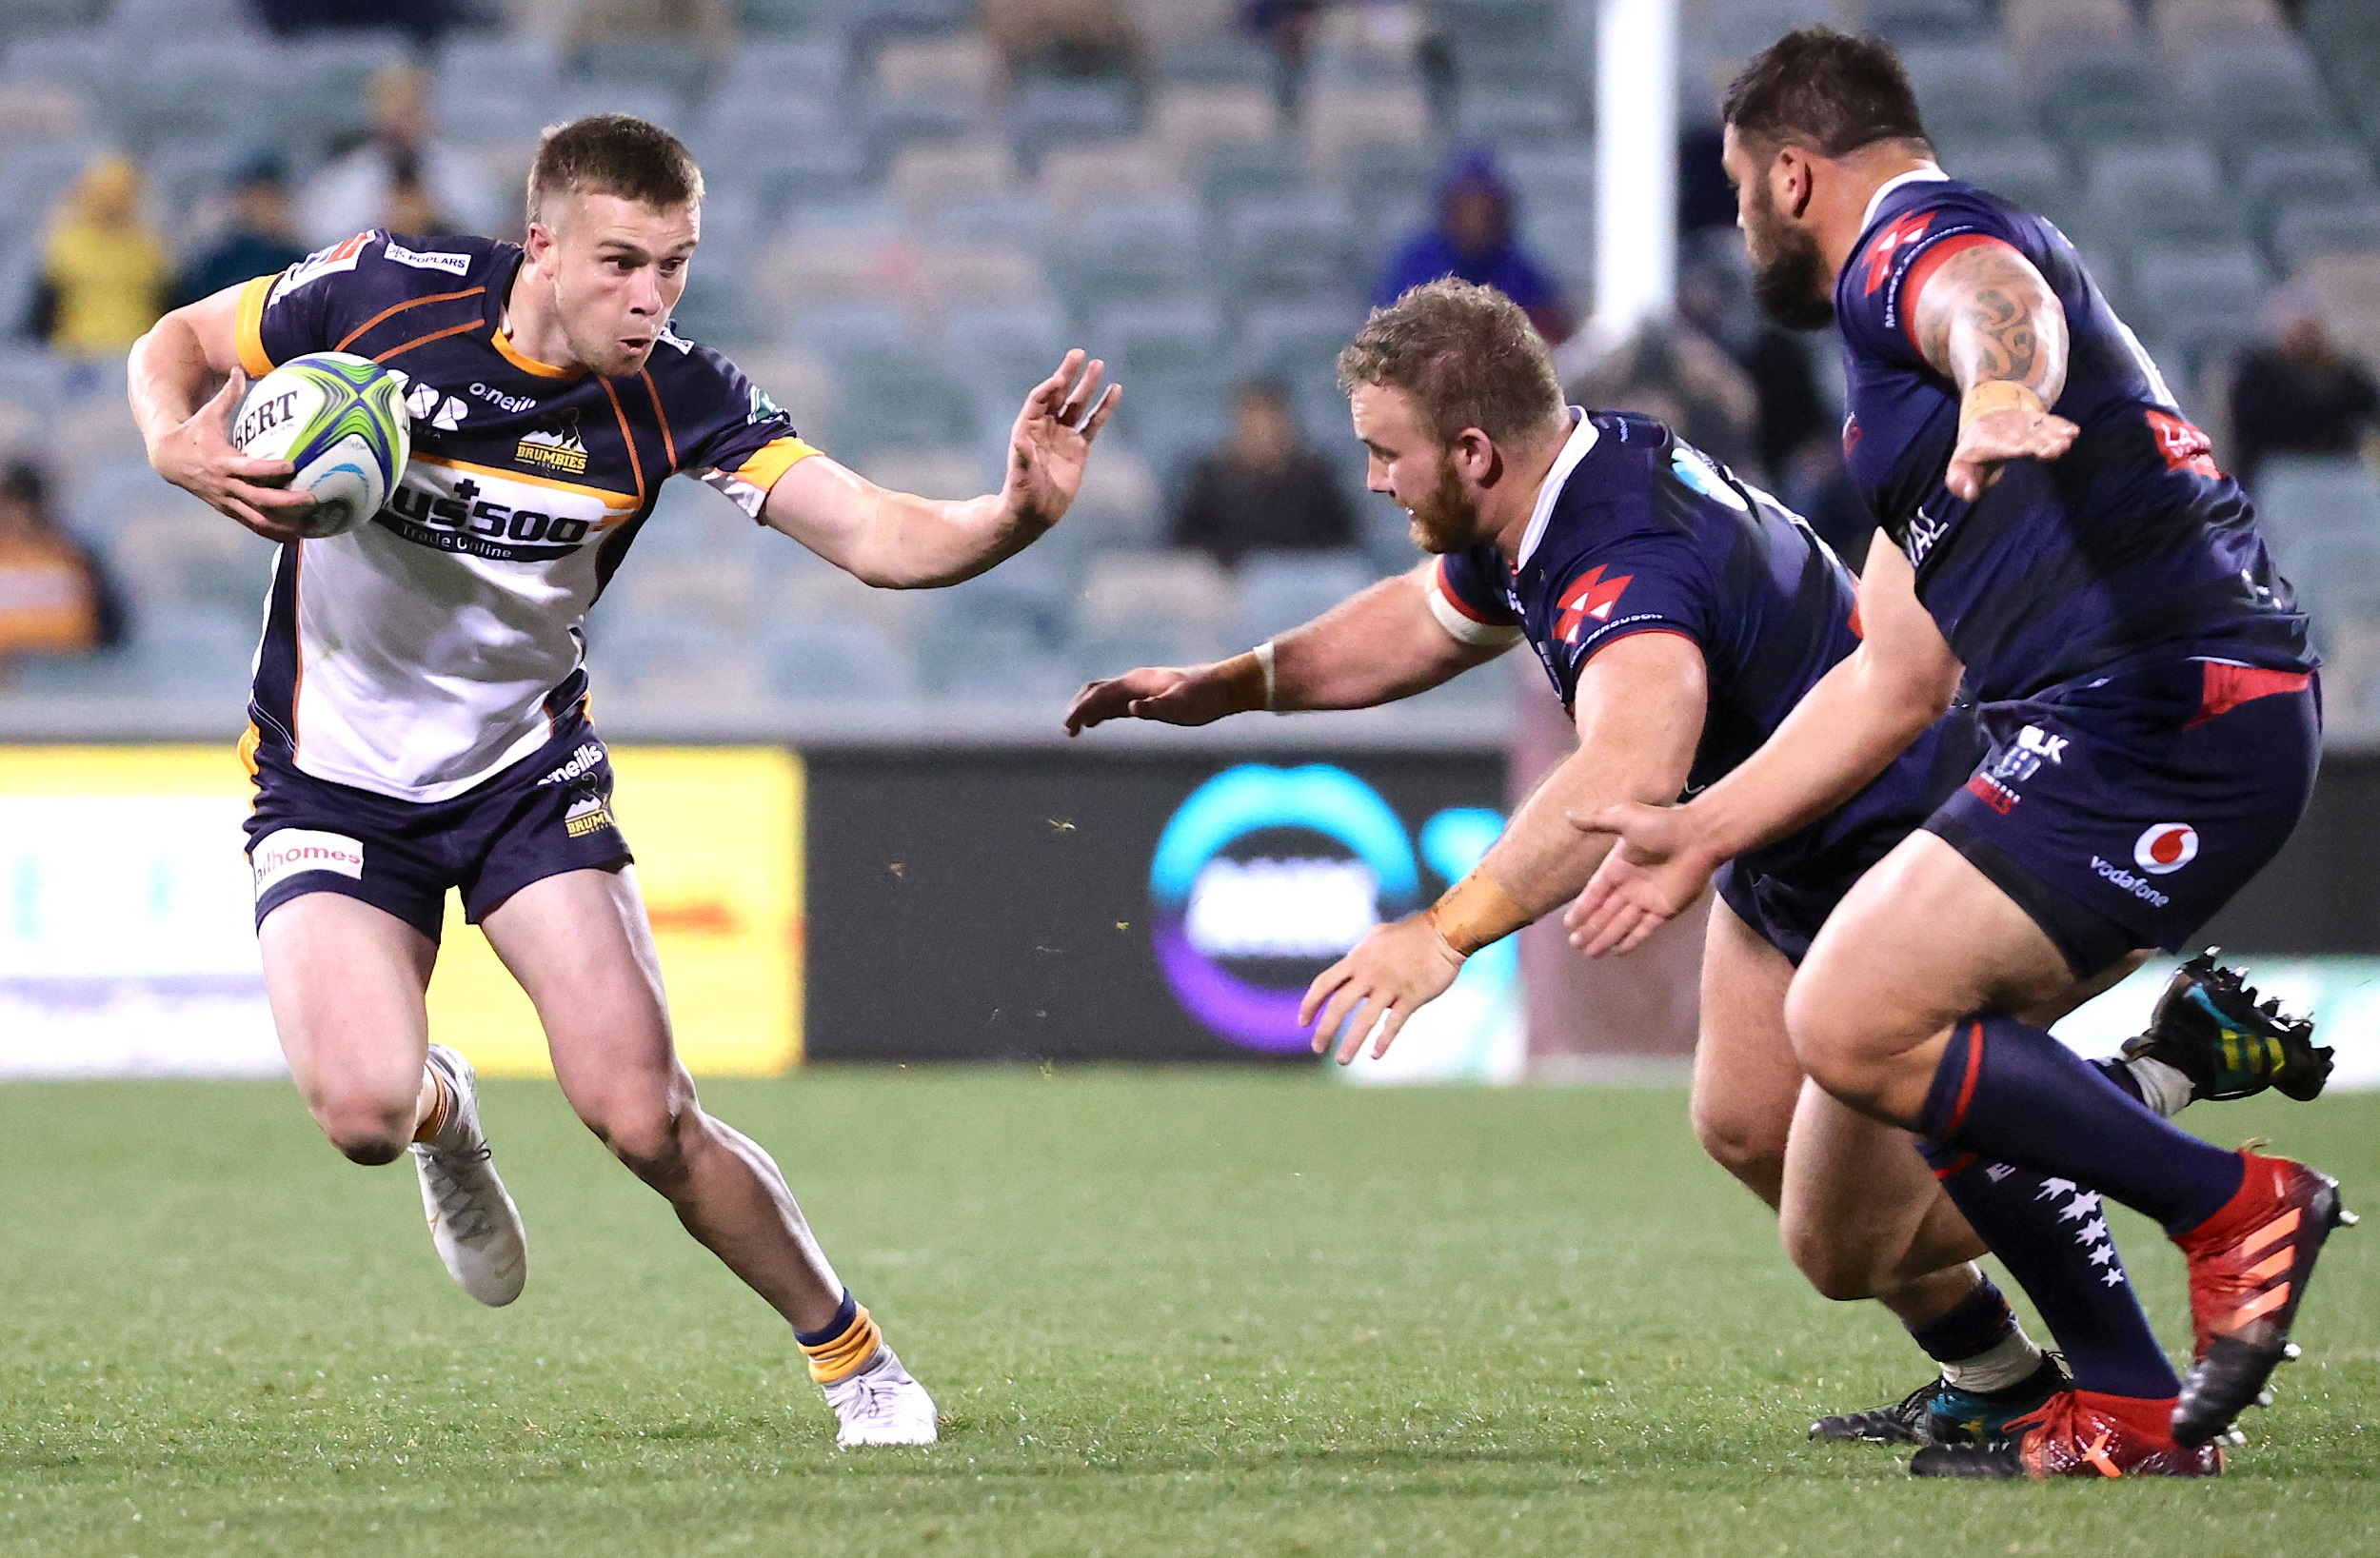 Mack Hansen (L) of the Brumbies runs with the ball during the Super Rugby match between the ACT Brumbies and Melbourne Rebels in Canberra.